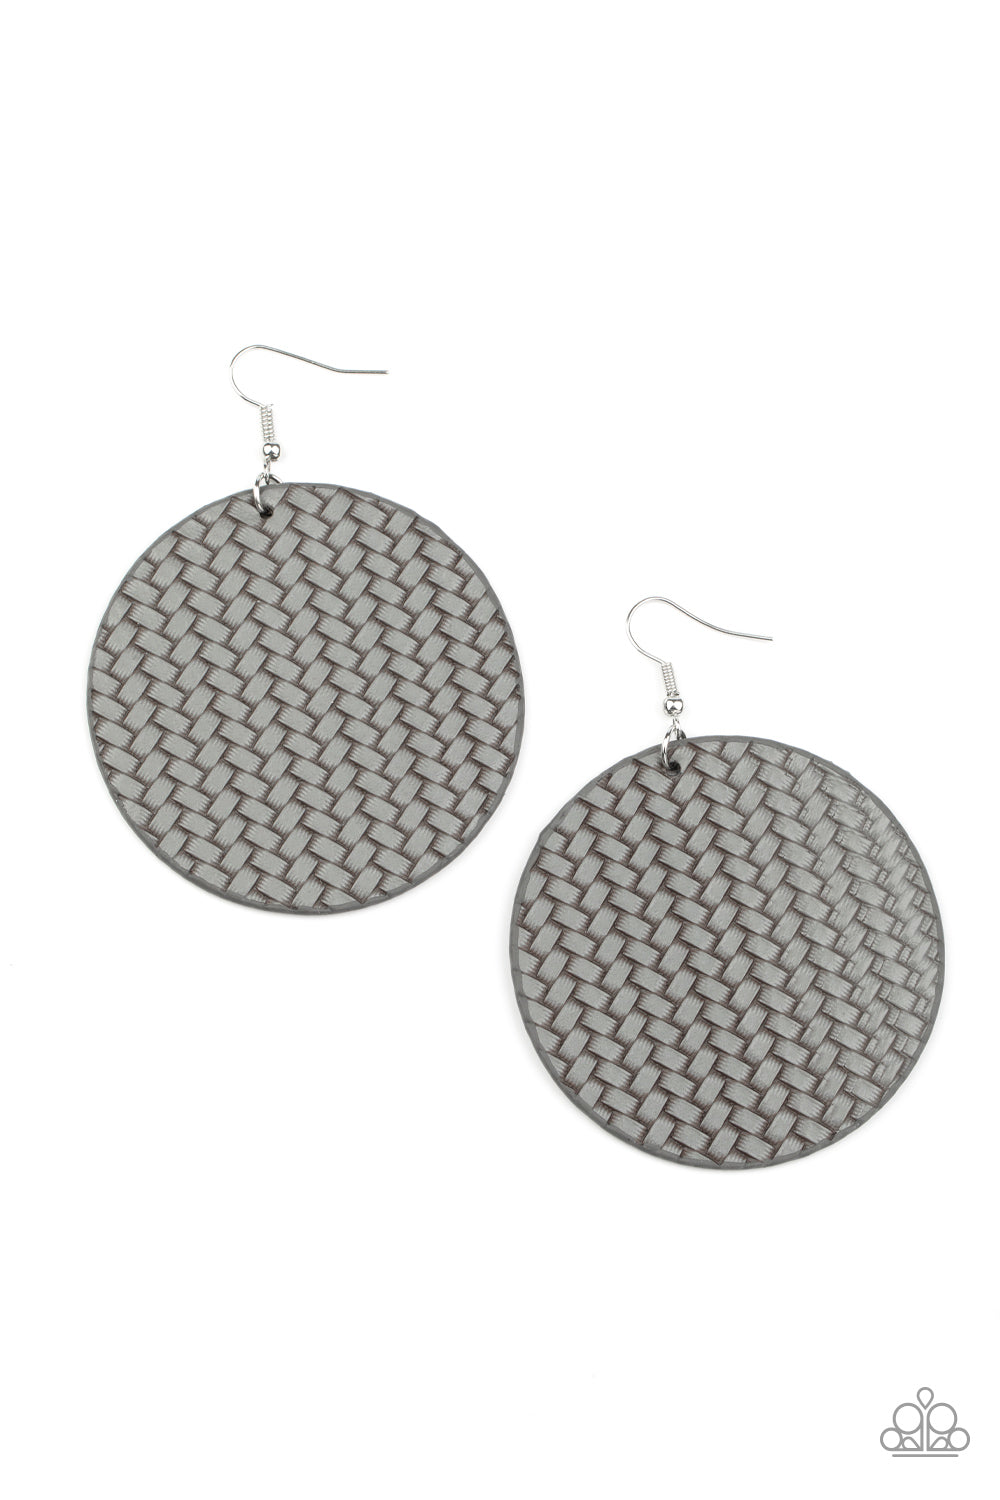 Paparazzi Earring ~ WEAVE Your Mark - Silver